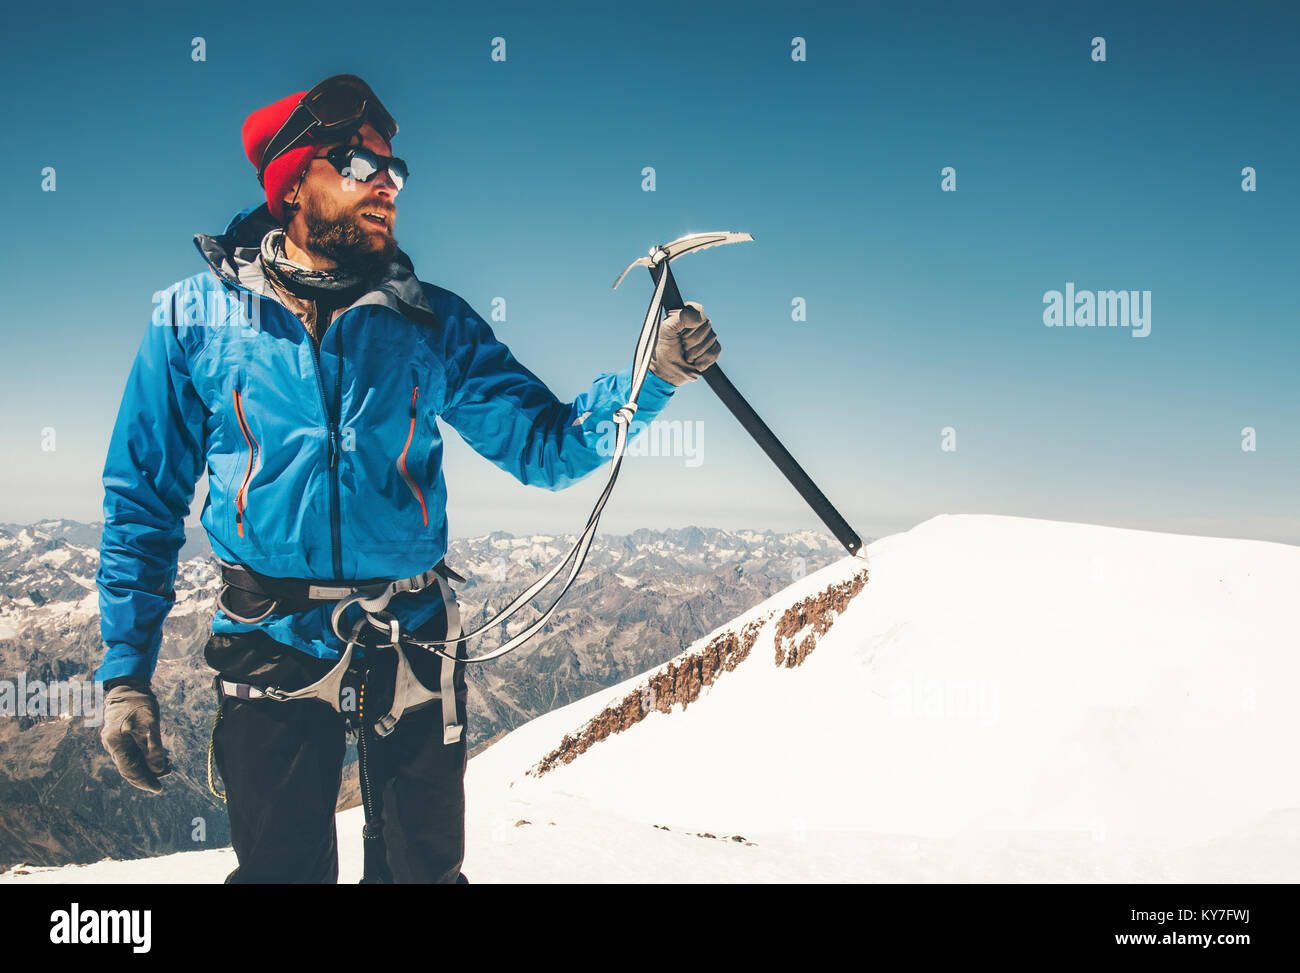 Man climber holding ice axe on mountain glacier Travel Lifestyle concept adventure active vacations extreme outdoor - Stock Image